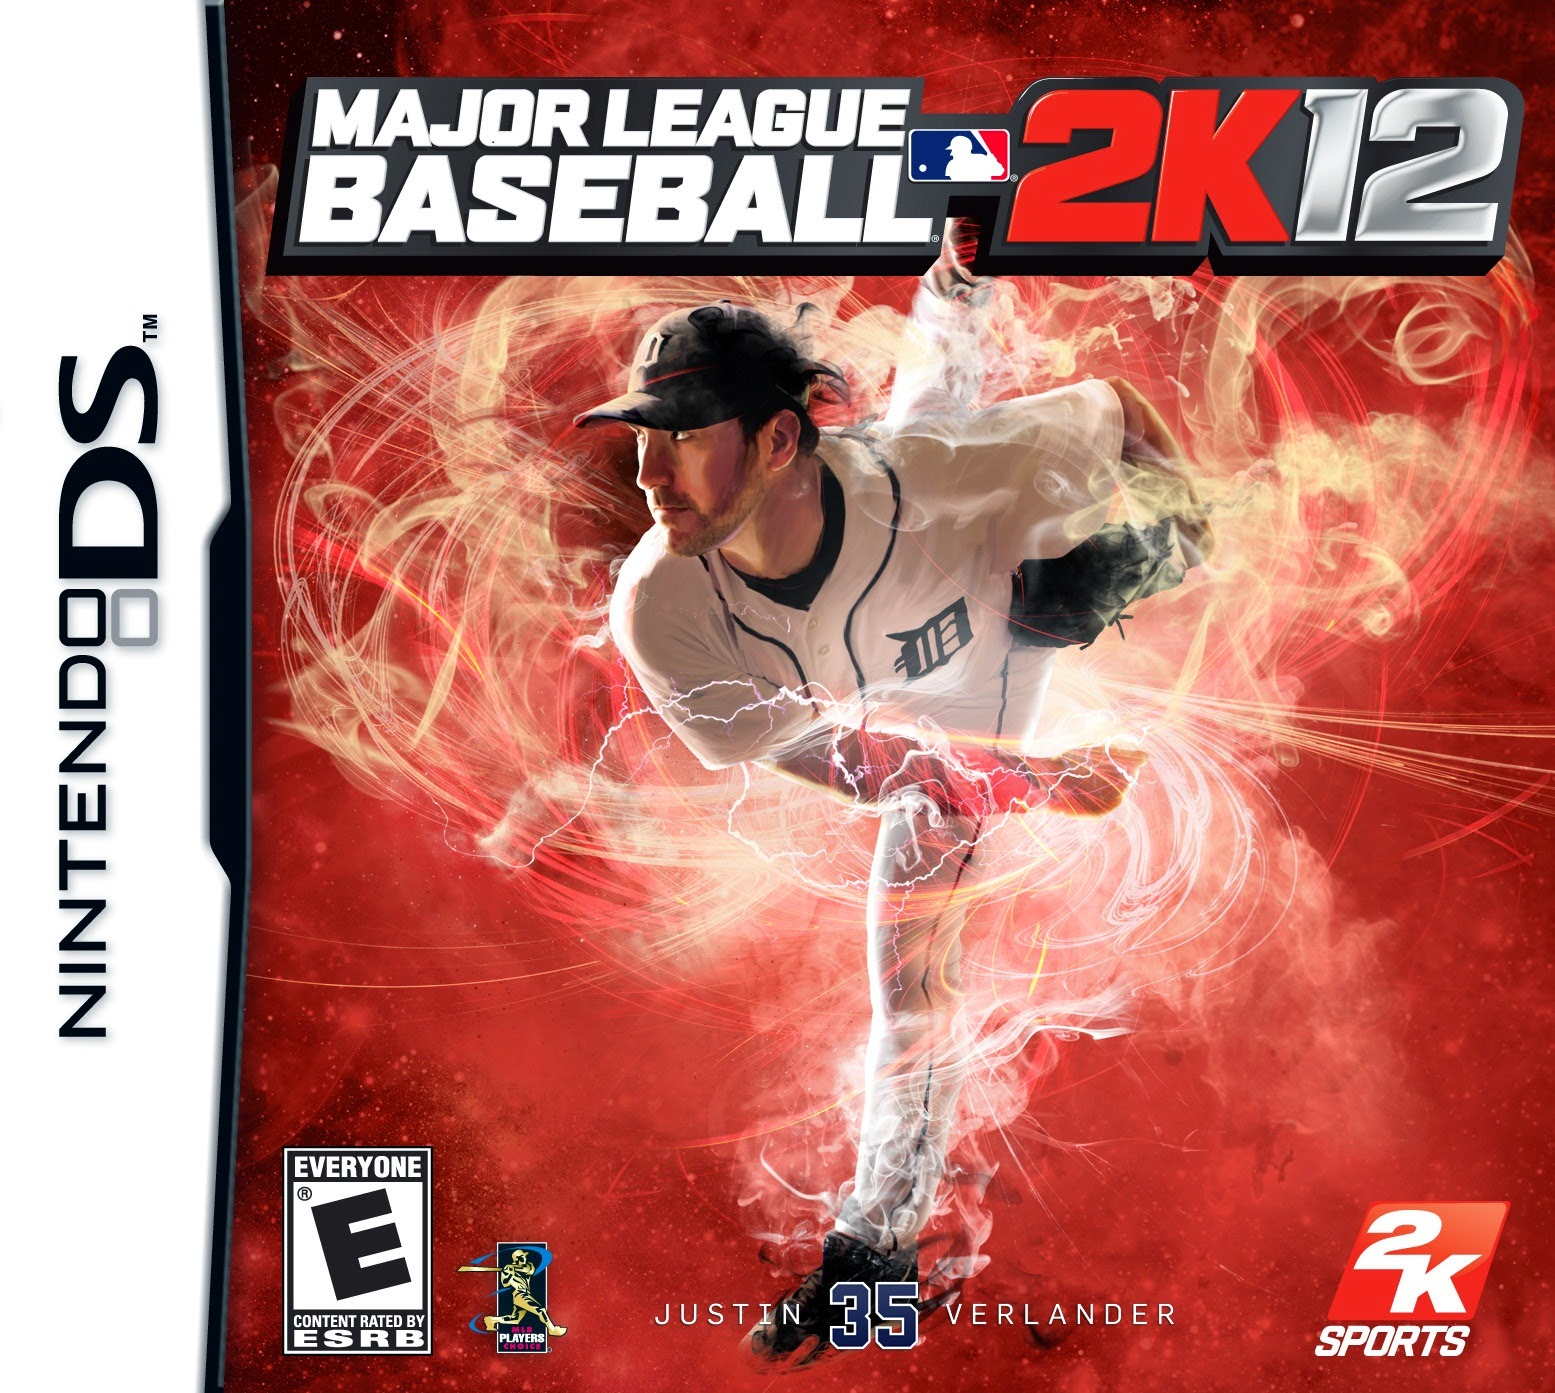 Major League Baseball 2K12 PC Game